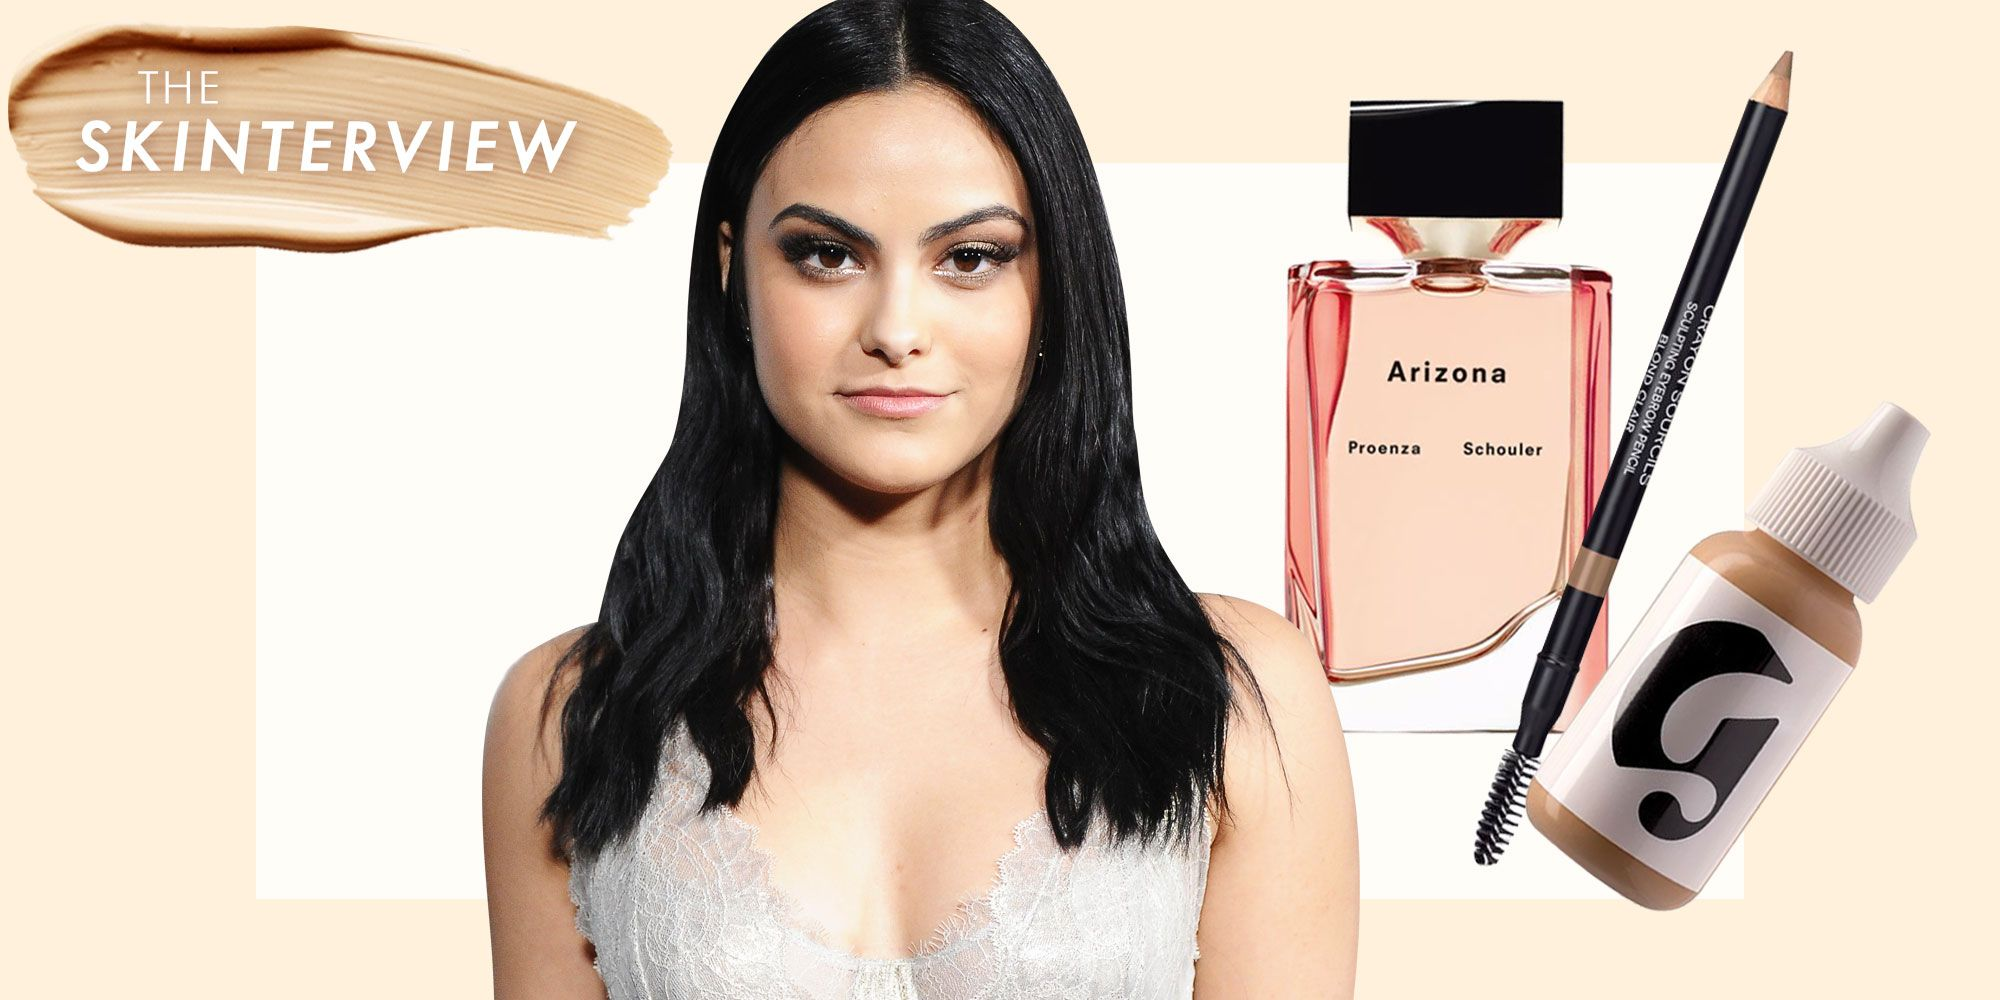 8 Beauty Products Camila Mendes Uses on the Set of Riverdale' — and IRL